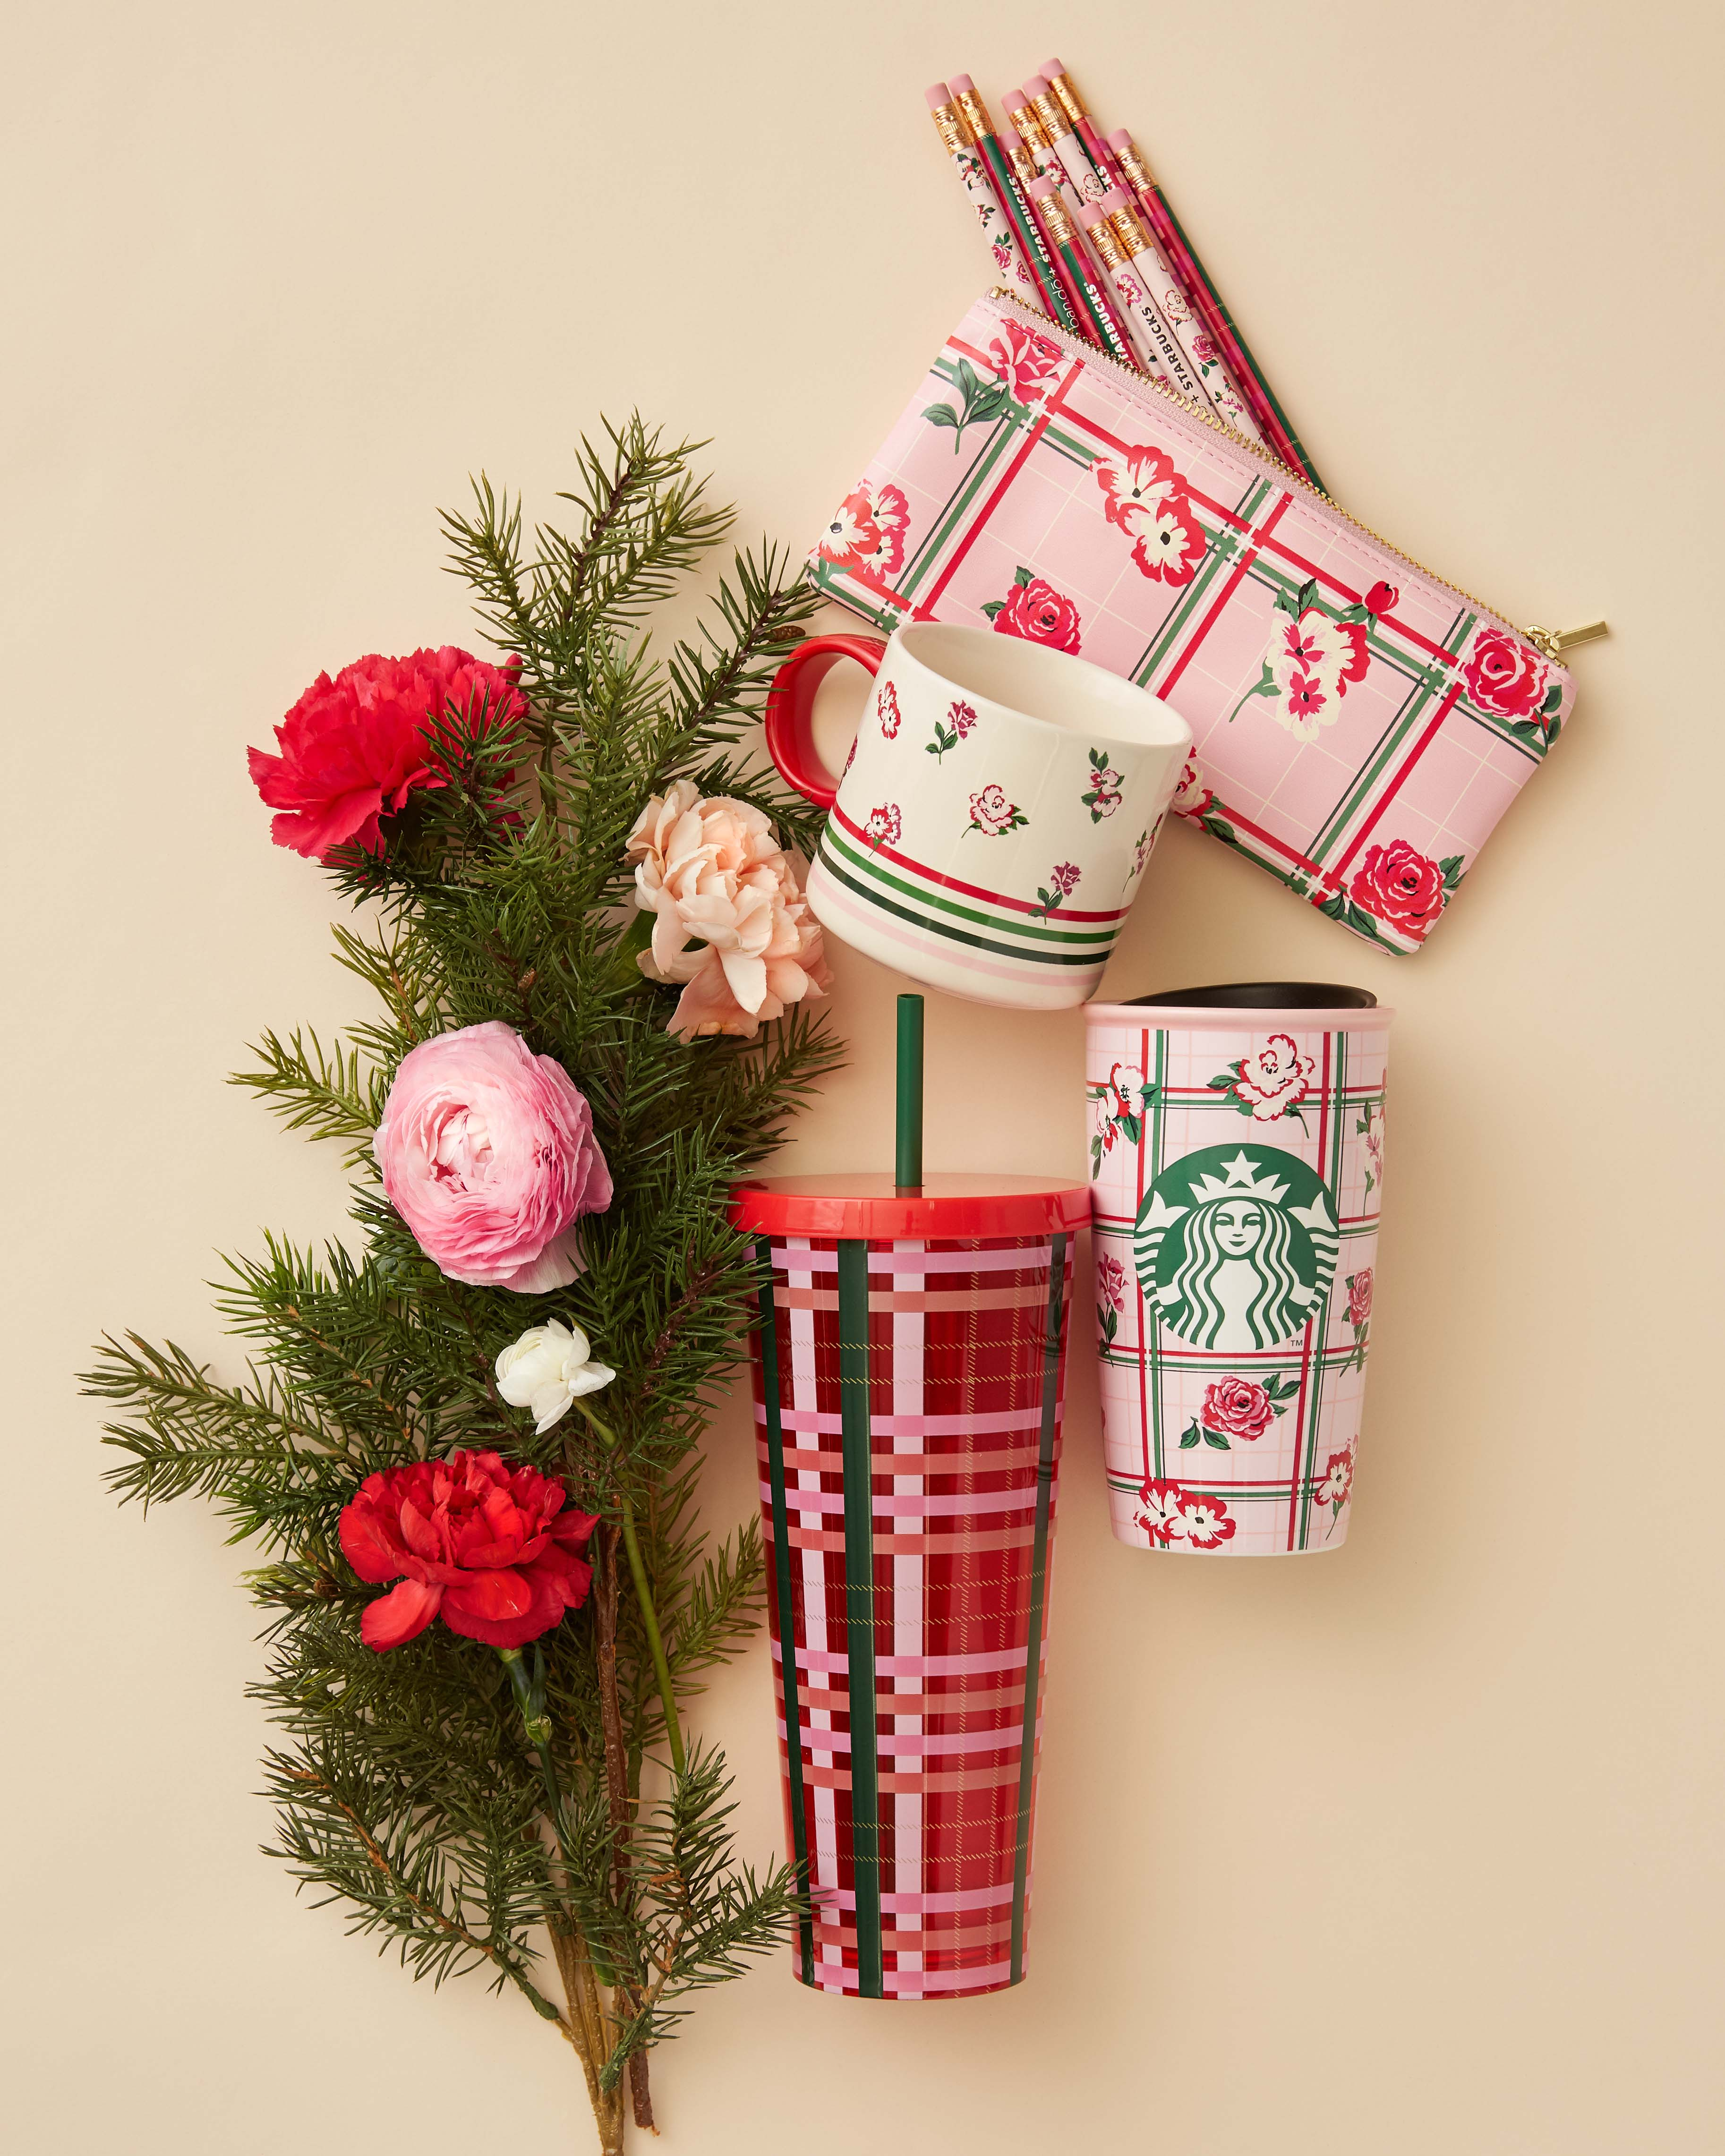 Juniper Latte and holiday gifts arrive in Starbucks stores